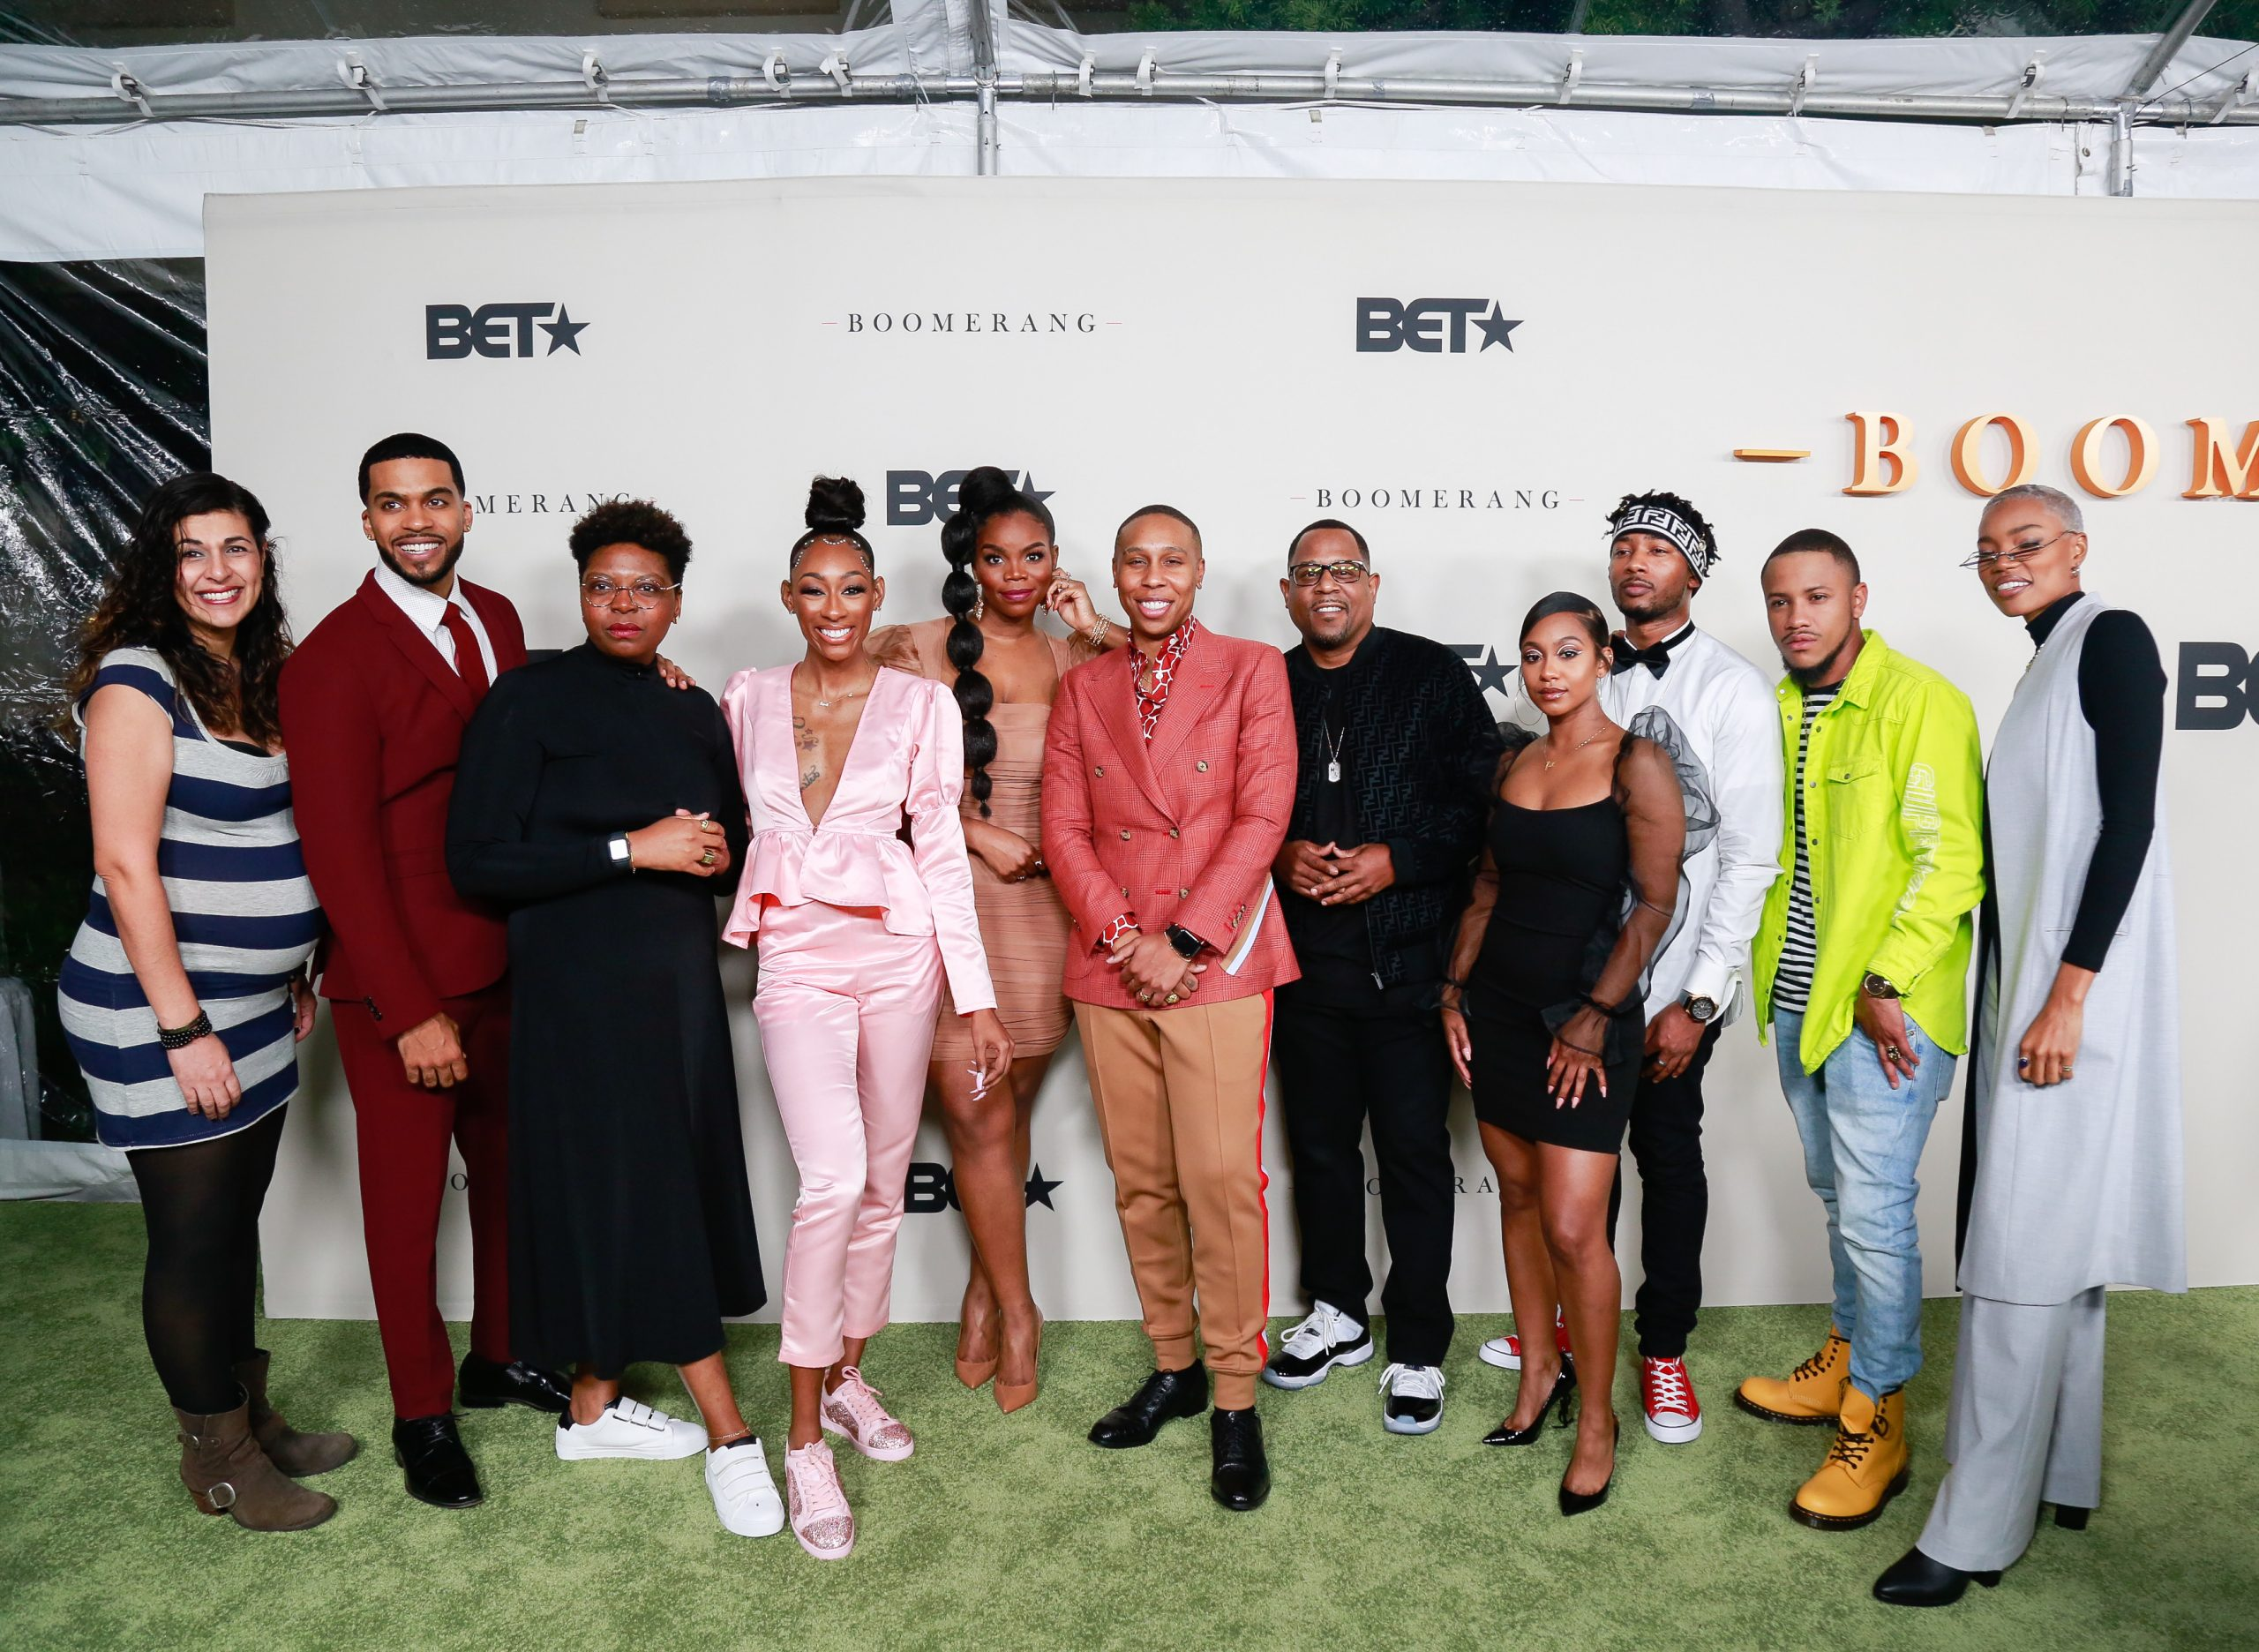 """PICS: Lena Waithe, Martin Lawrence,  Lance Gross & More Attend """"BOOMERANG"""" on BET S2 Premiere"""